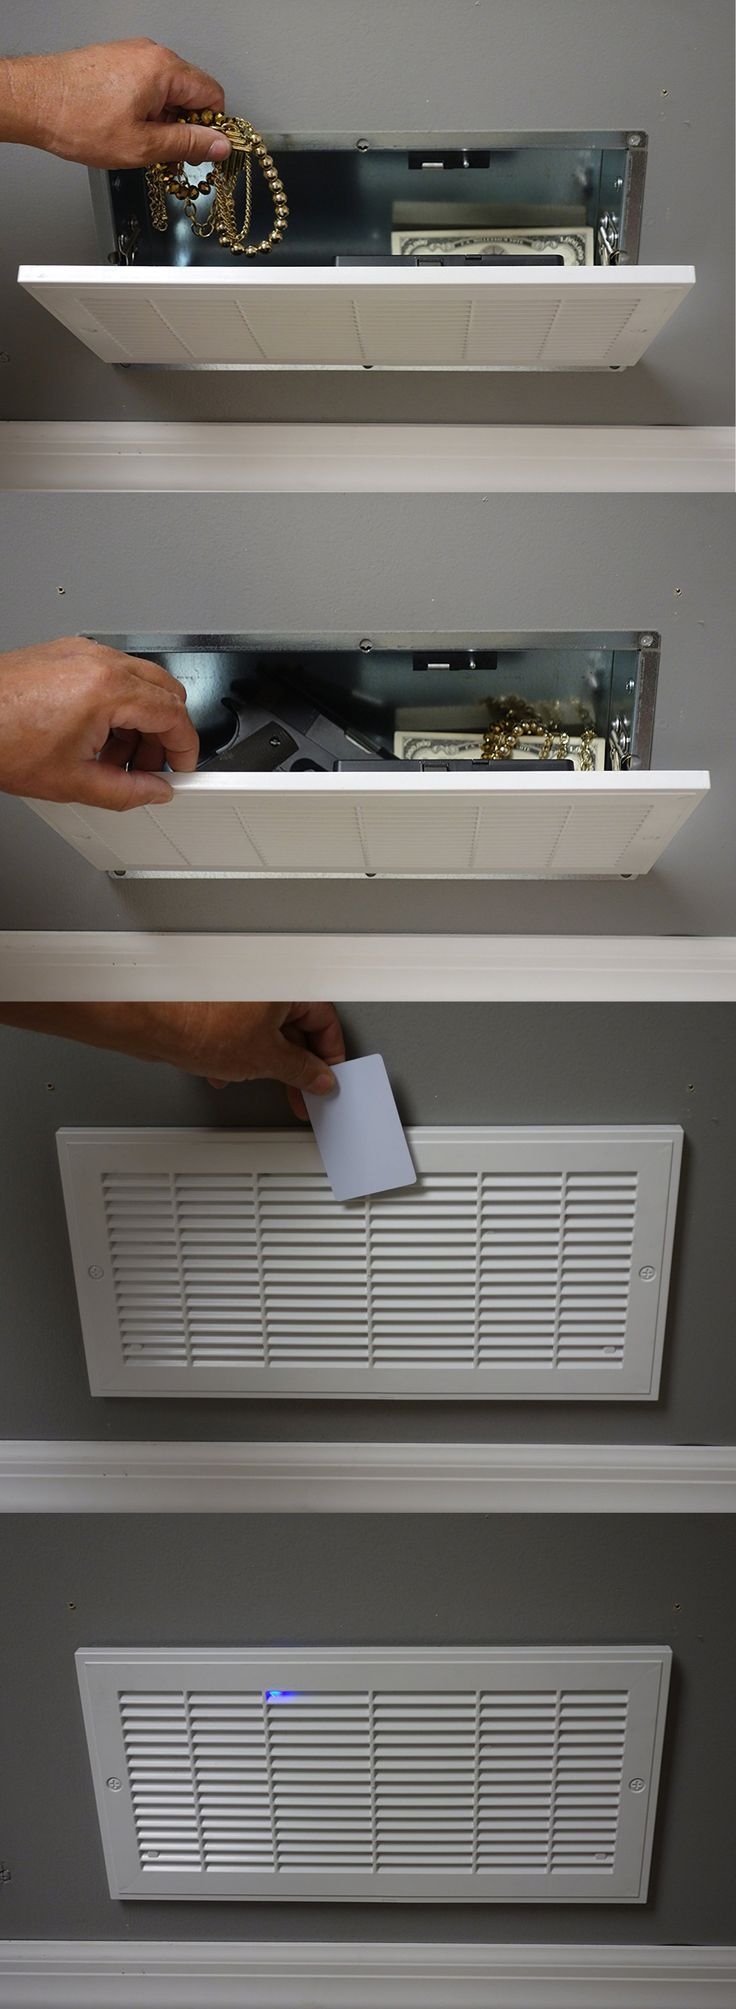 Vent Safe with RFID Lock. Store your valuables in plain sight, without having to memorize any numbers.